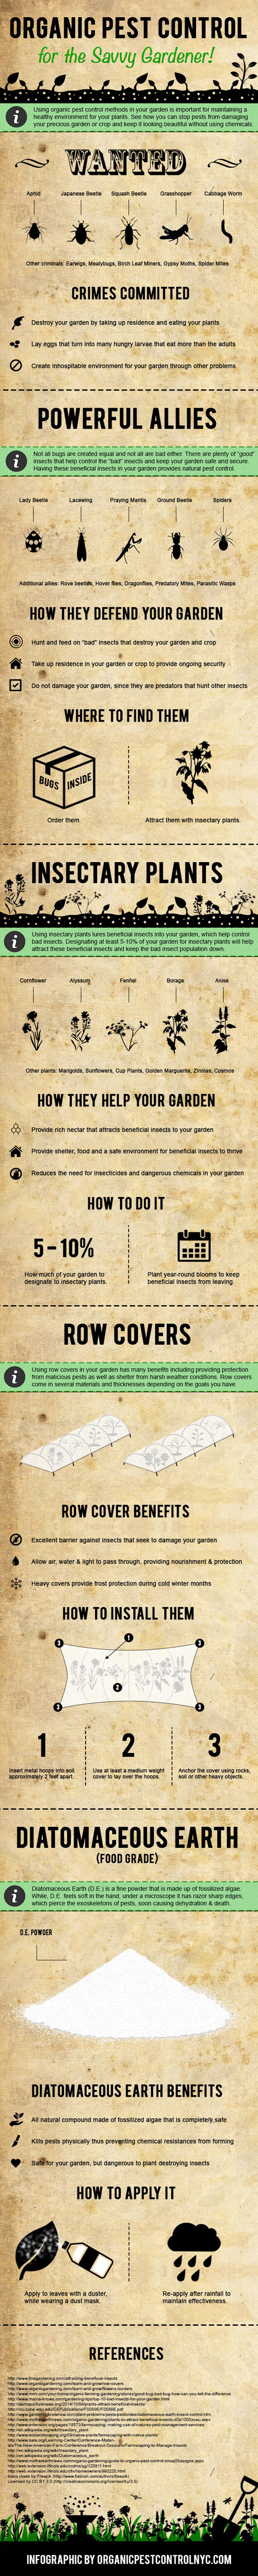 DIY Garden Pest Control [Infographic] | Gardening Life | Scoop.it